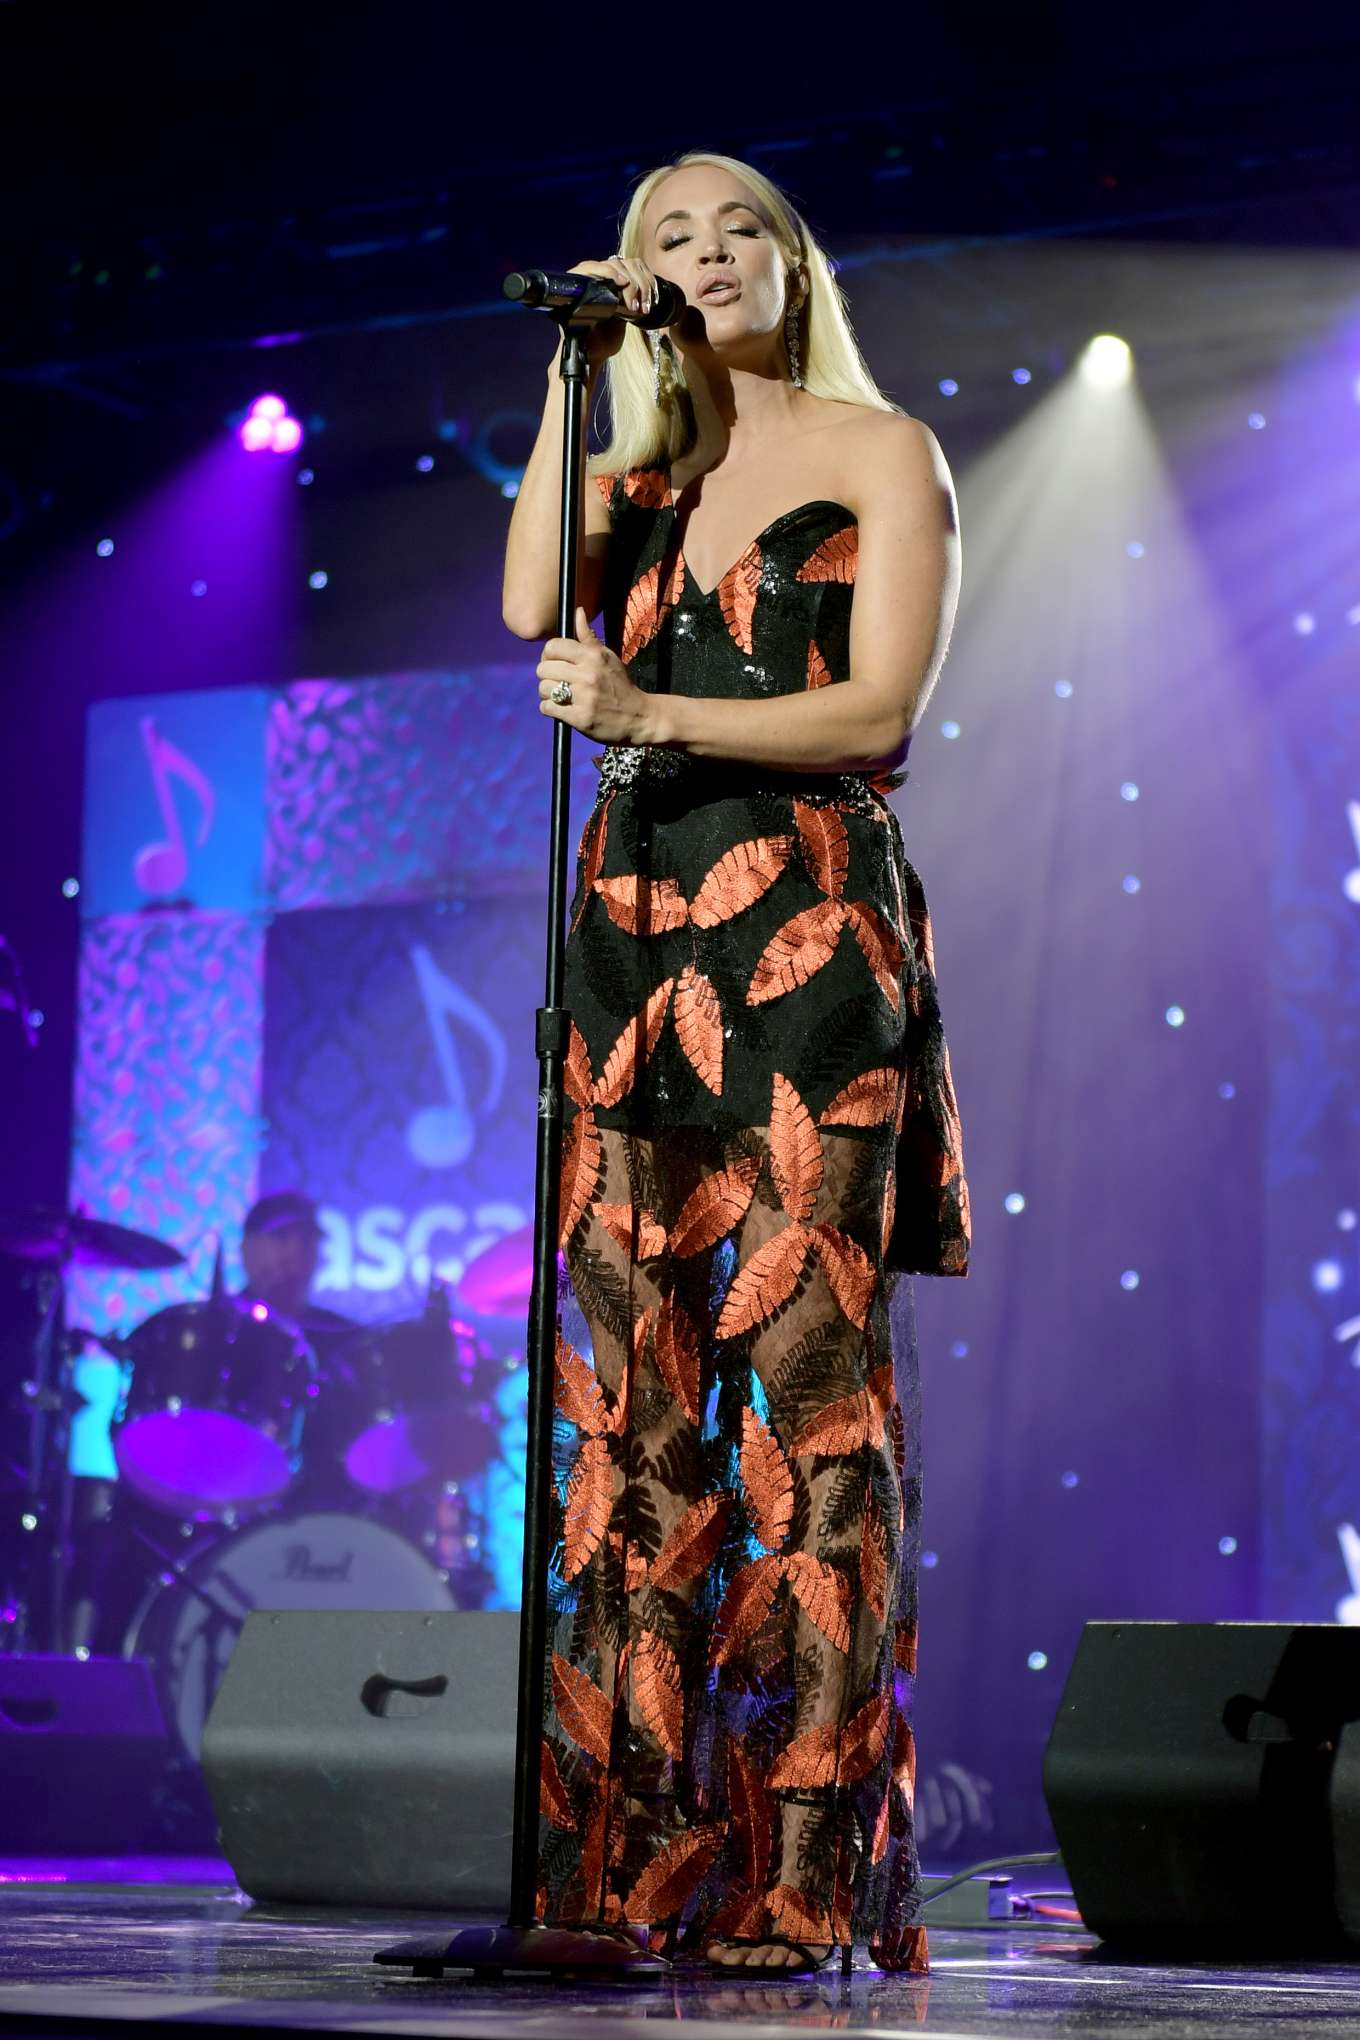 Carrie Underwood - Performs at 57th Annual ASCAP Country Music Awards in Nashville